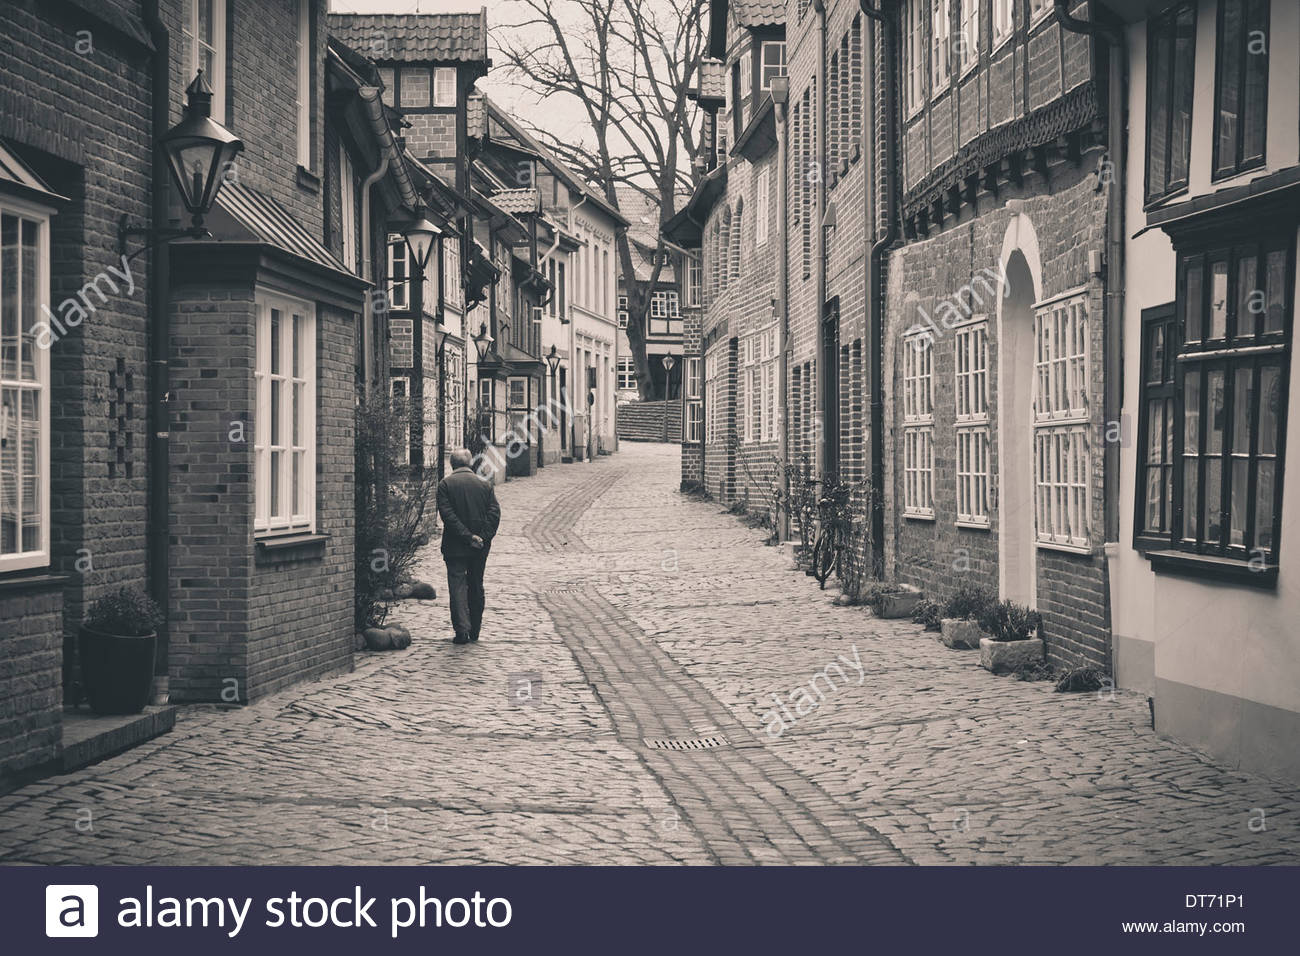 Old man walking down a cobbled street in Lüneburg old town, Lower Saxony, Germany - Stock Image